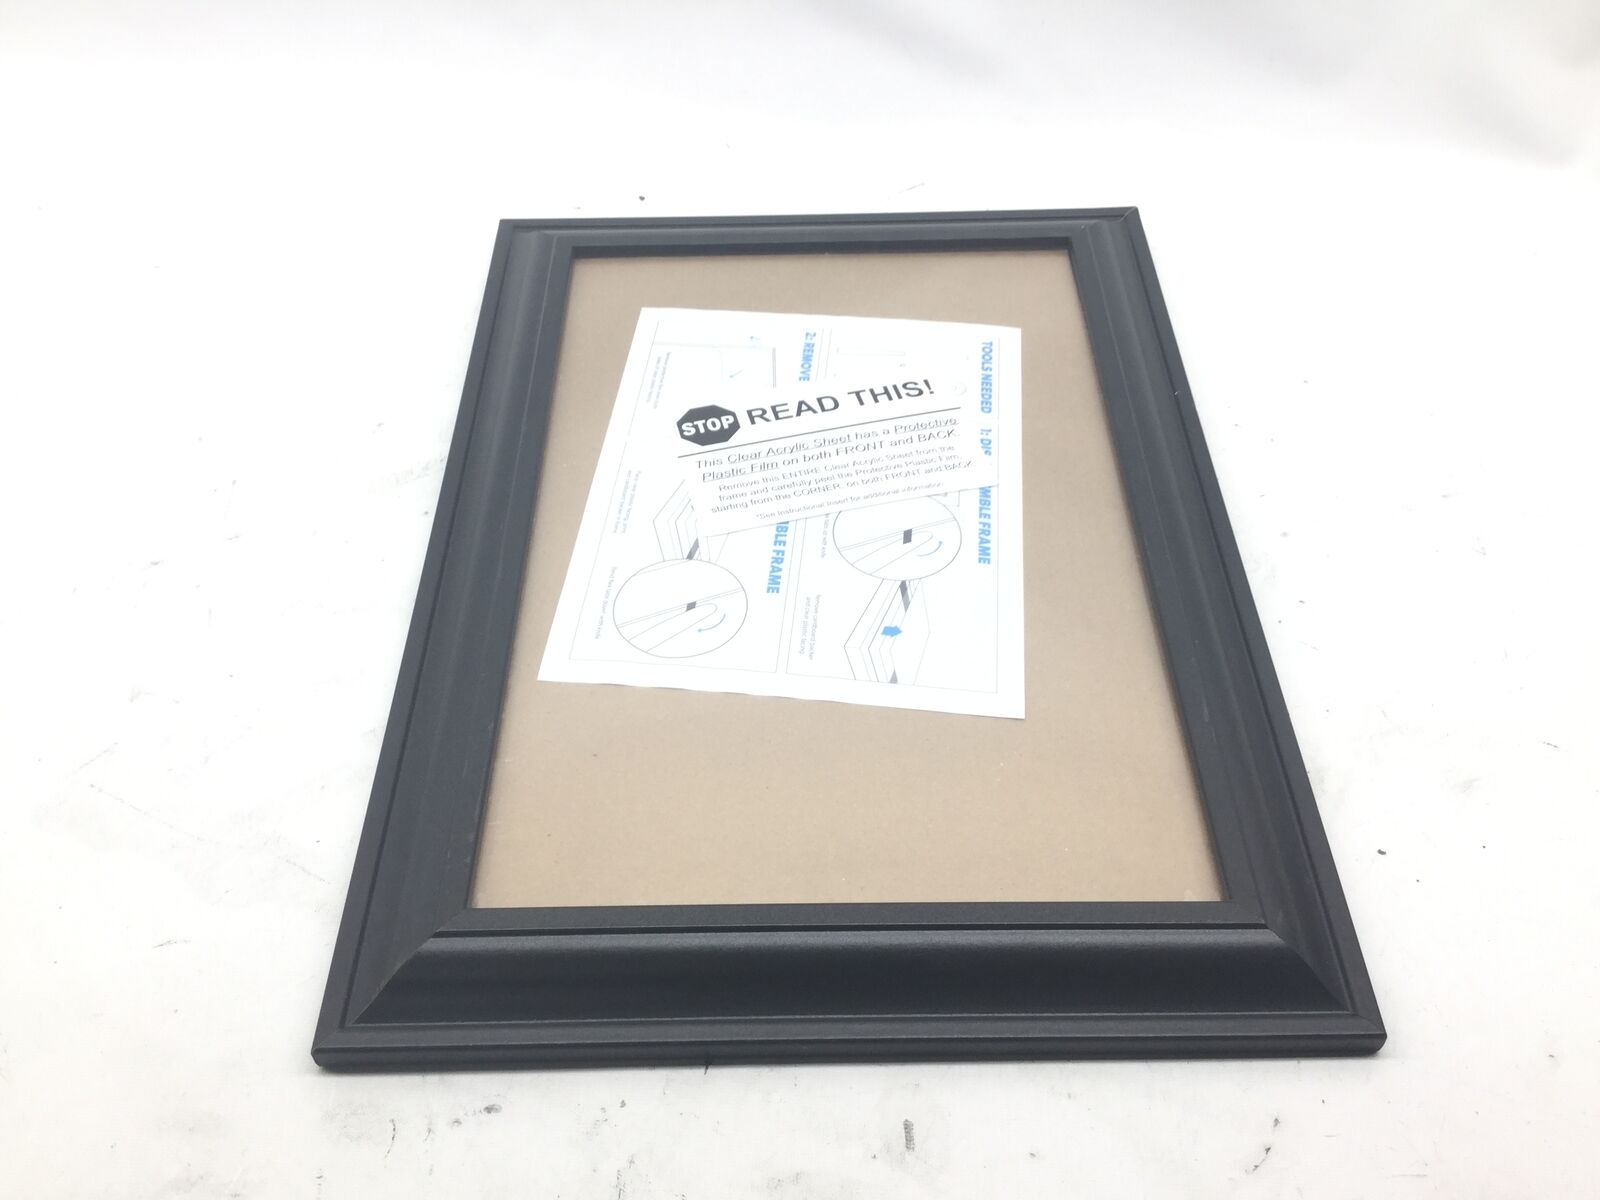 3 Opening Glass Face 10x16 White Picture Frame Holds 4x6 Media White Collage Mat